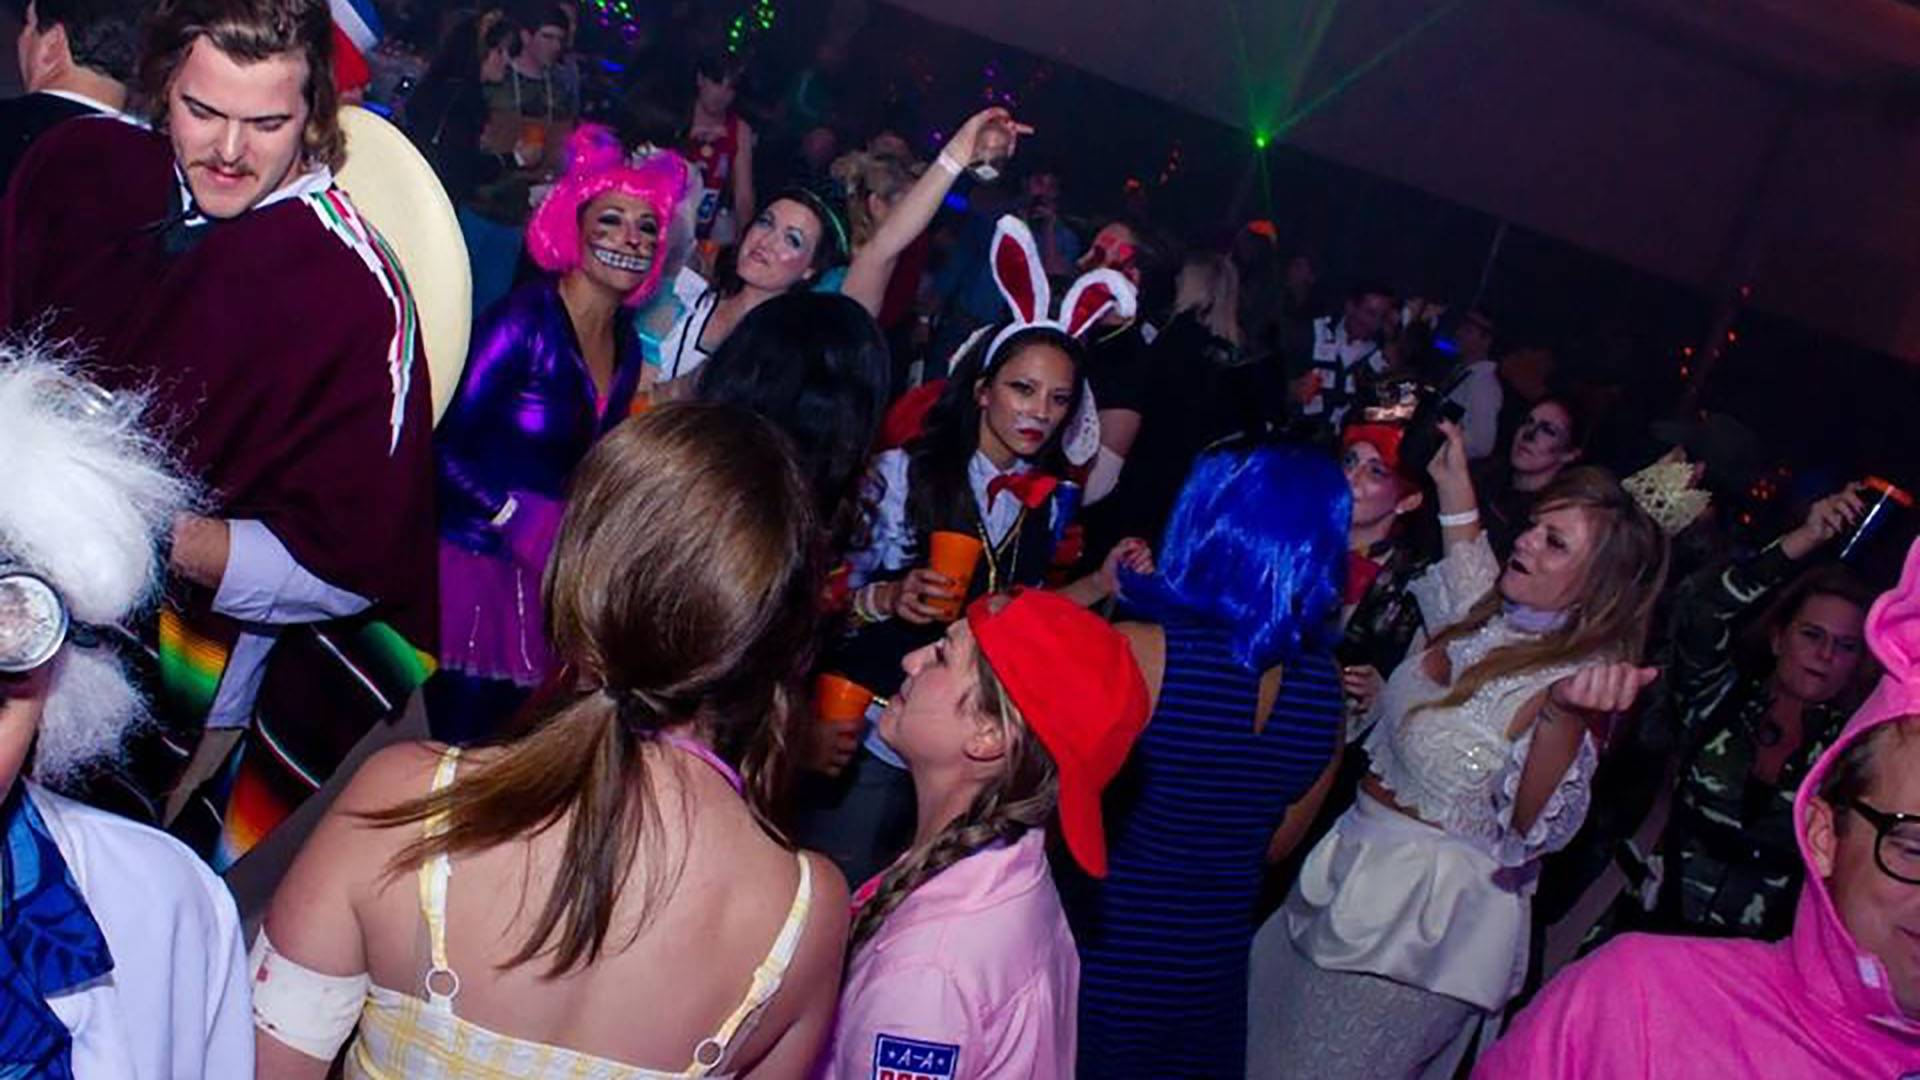 Leave Your Reply on Halloween Partiesar Me Sanjose Com Silicon Valley Events Adult Club Cosplay.